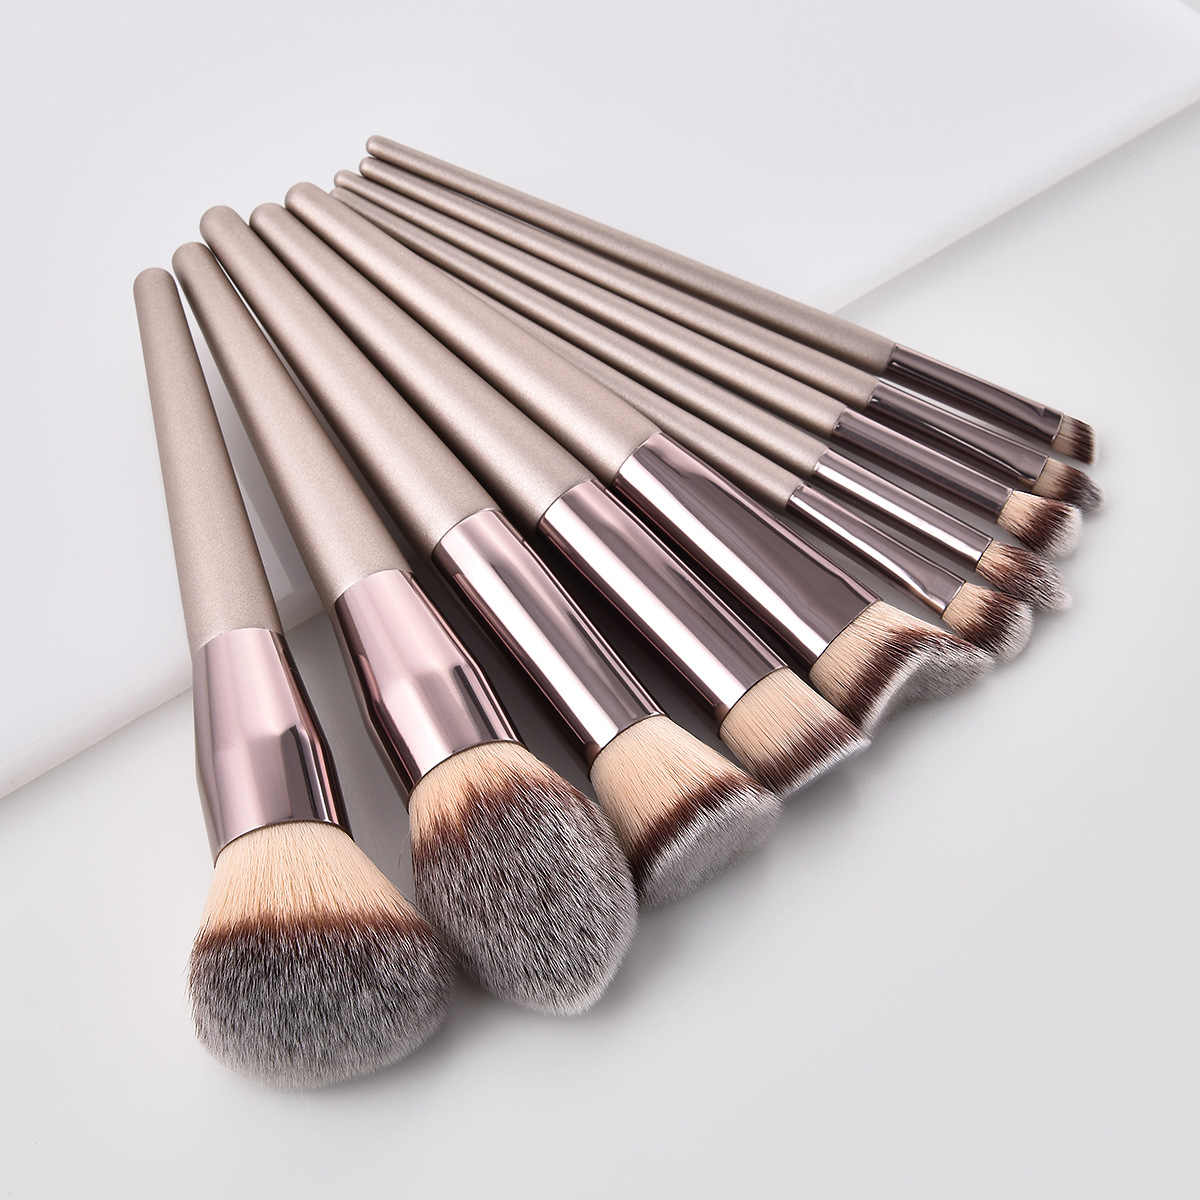 Luxury Champagne Makeup Brushes Foundation Powder Blush Eye shadow Concealer Lip Eye Make Up Brush Set brochas maquillaje